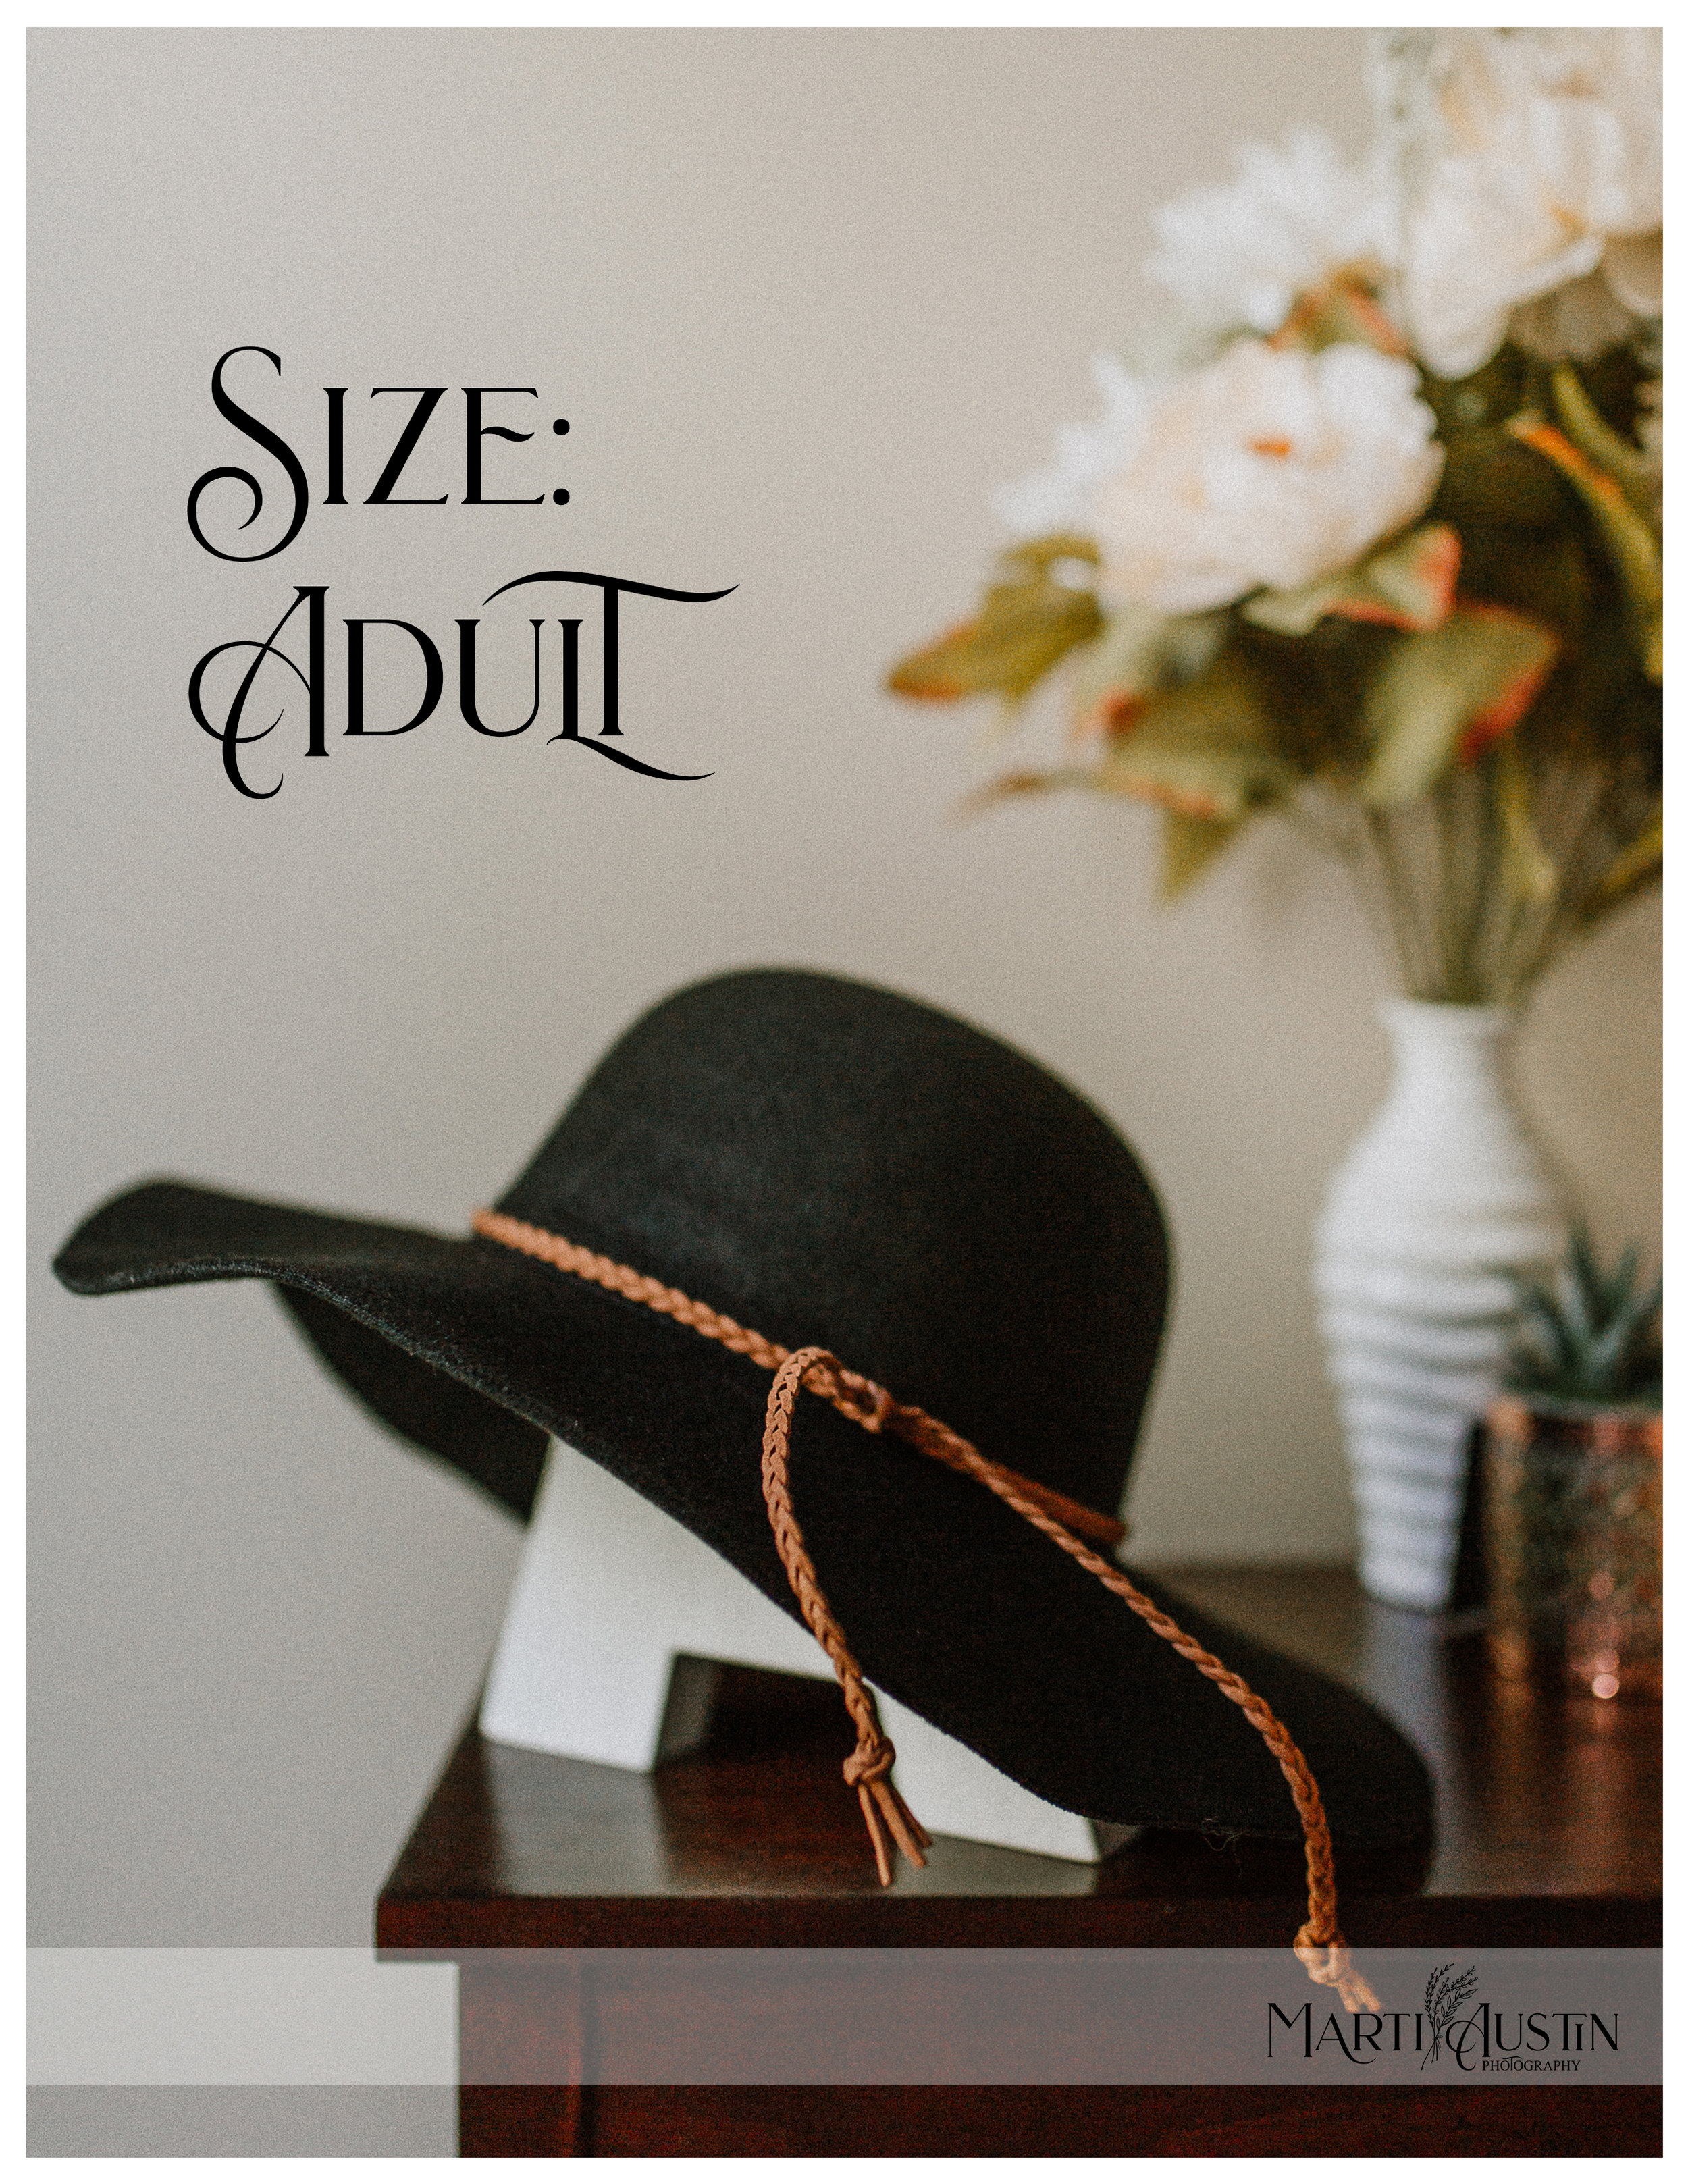 """Black floppy hat resting on a wooden letter """"A"""" on a table with flowers"""